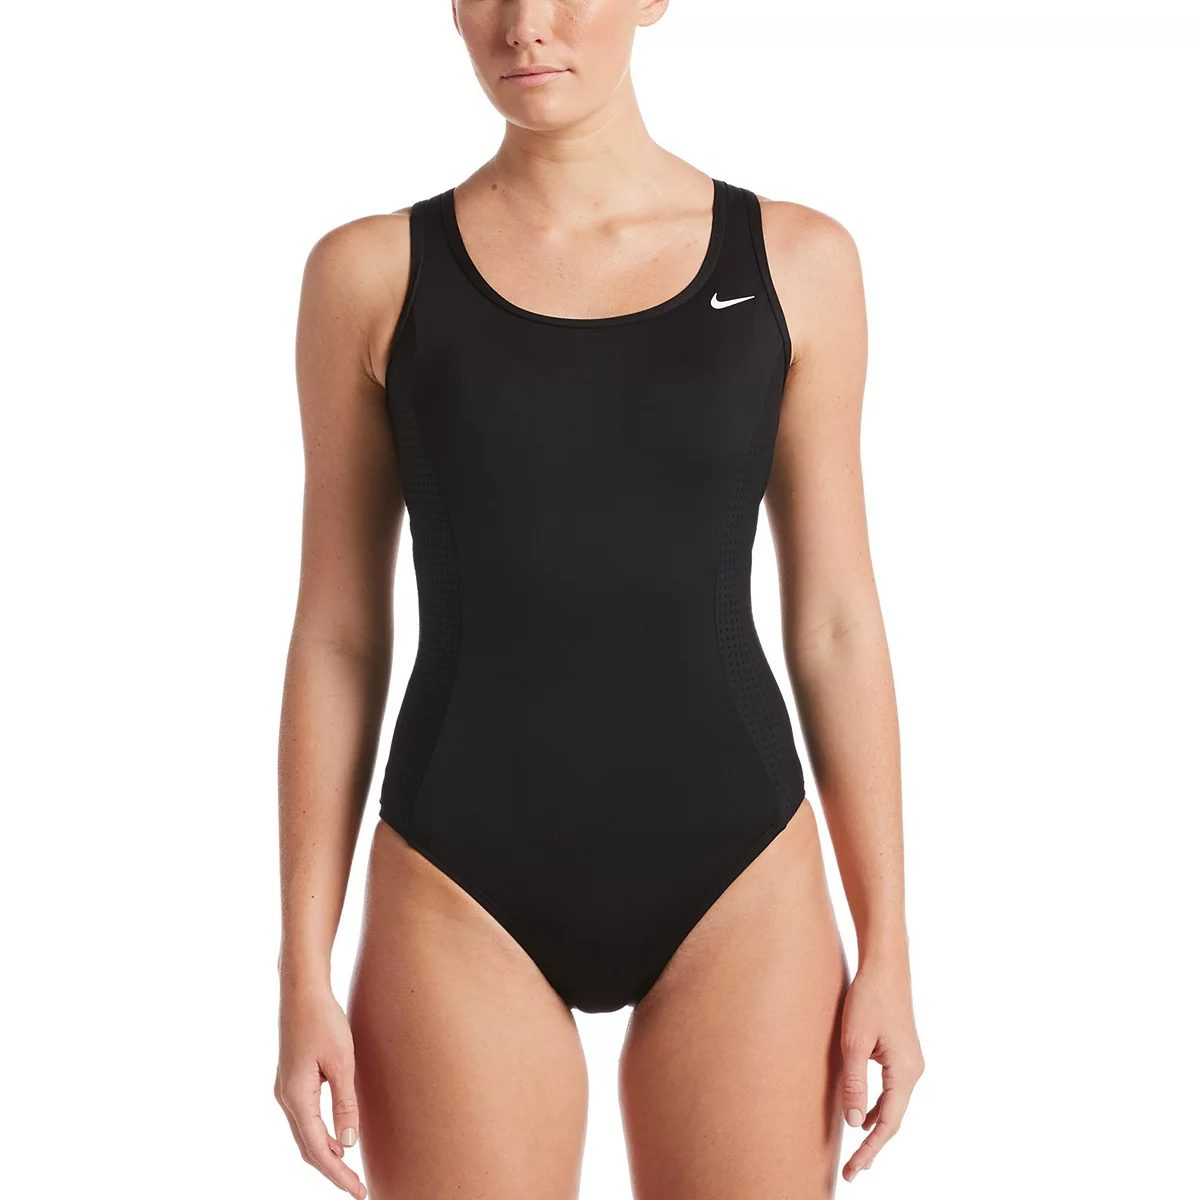 Sporty swimsuit for sagging breasts